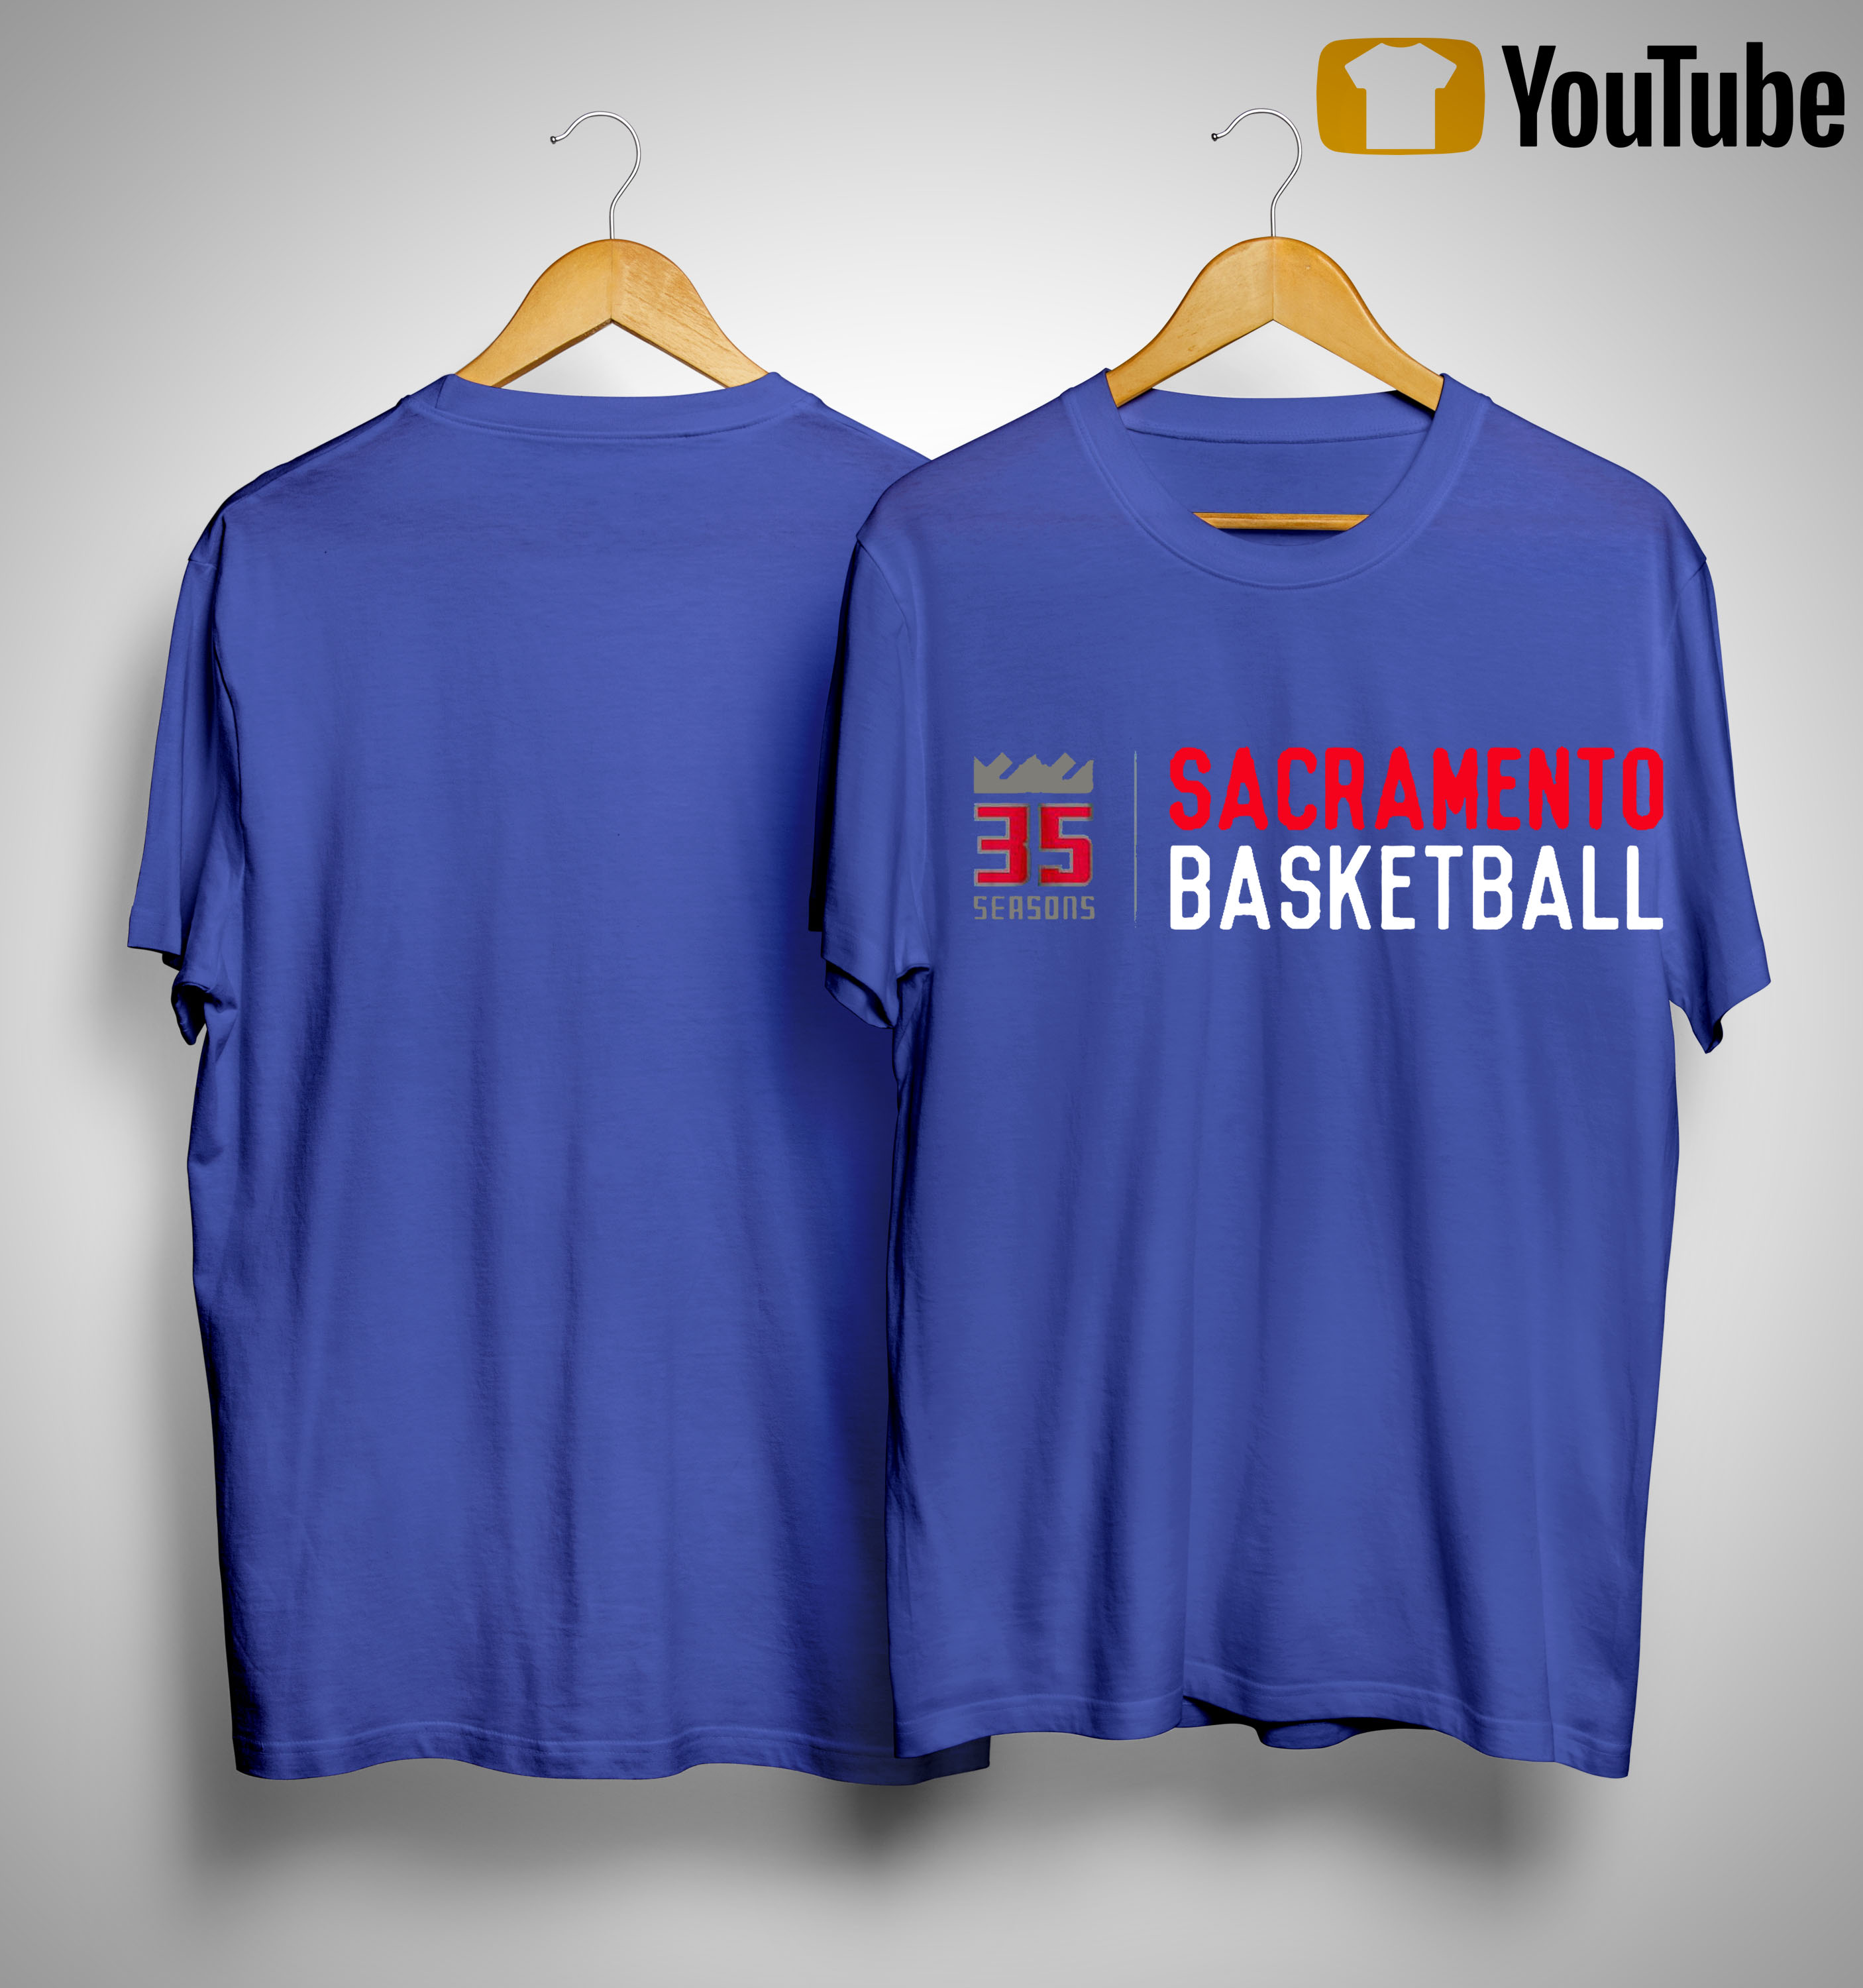 35 Seasons Sacramento Basketball Shirt